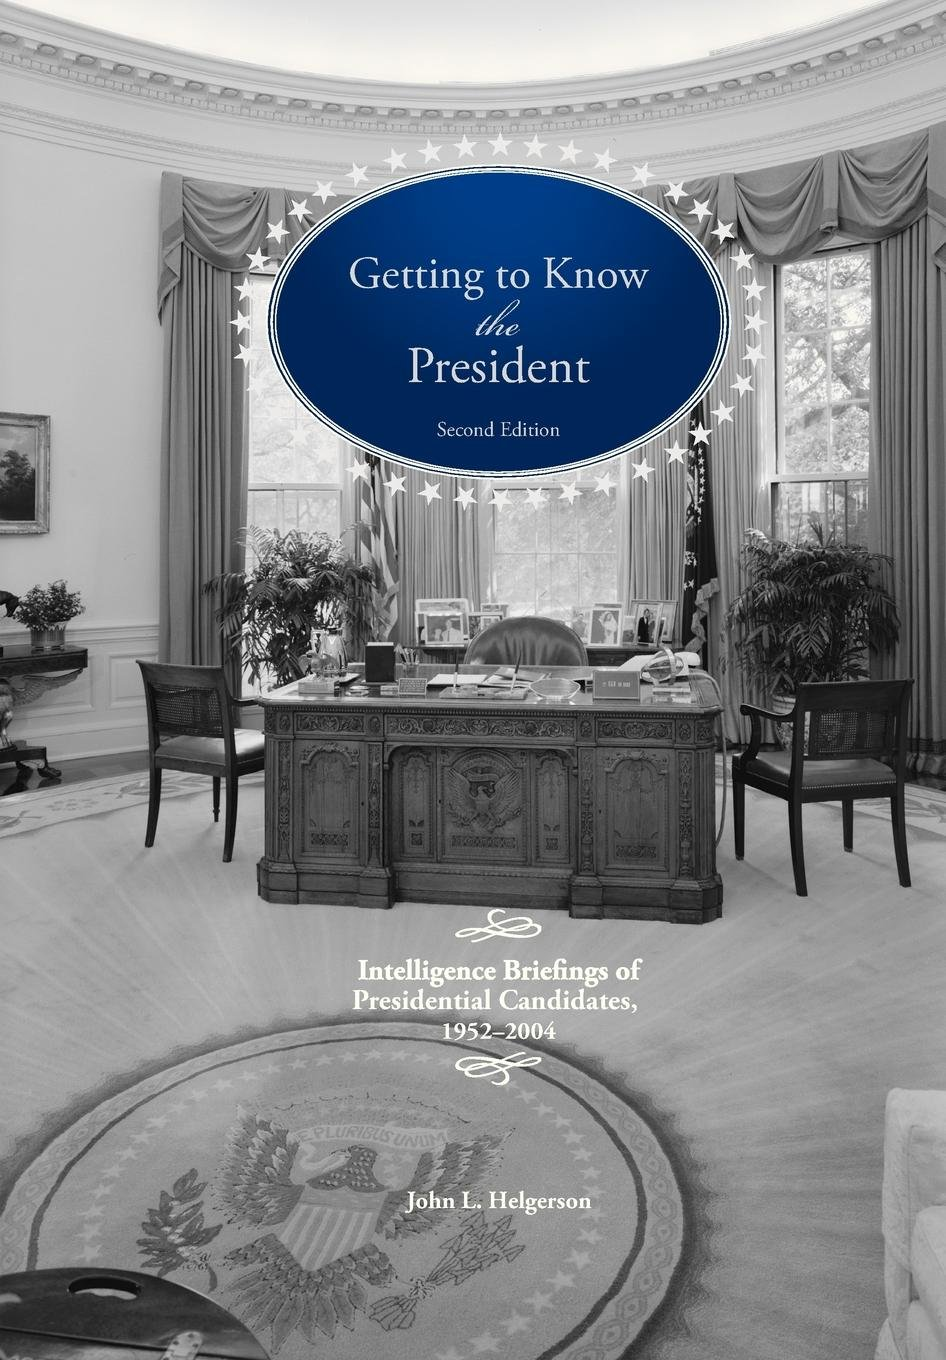 Getting To Know the President: Intelligence Briefings of Presidential Candidates, 1952-2004 PDF